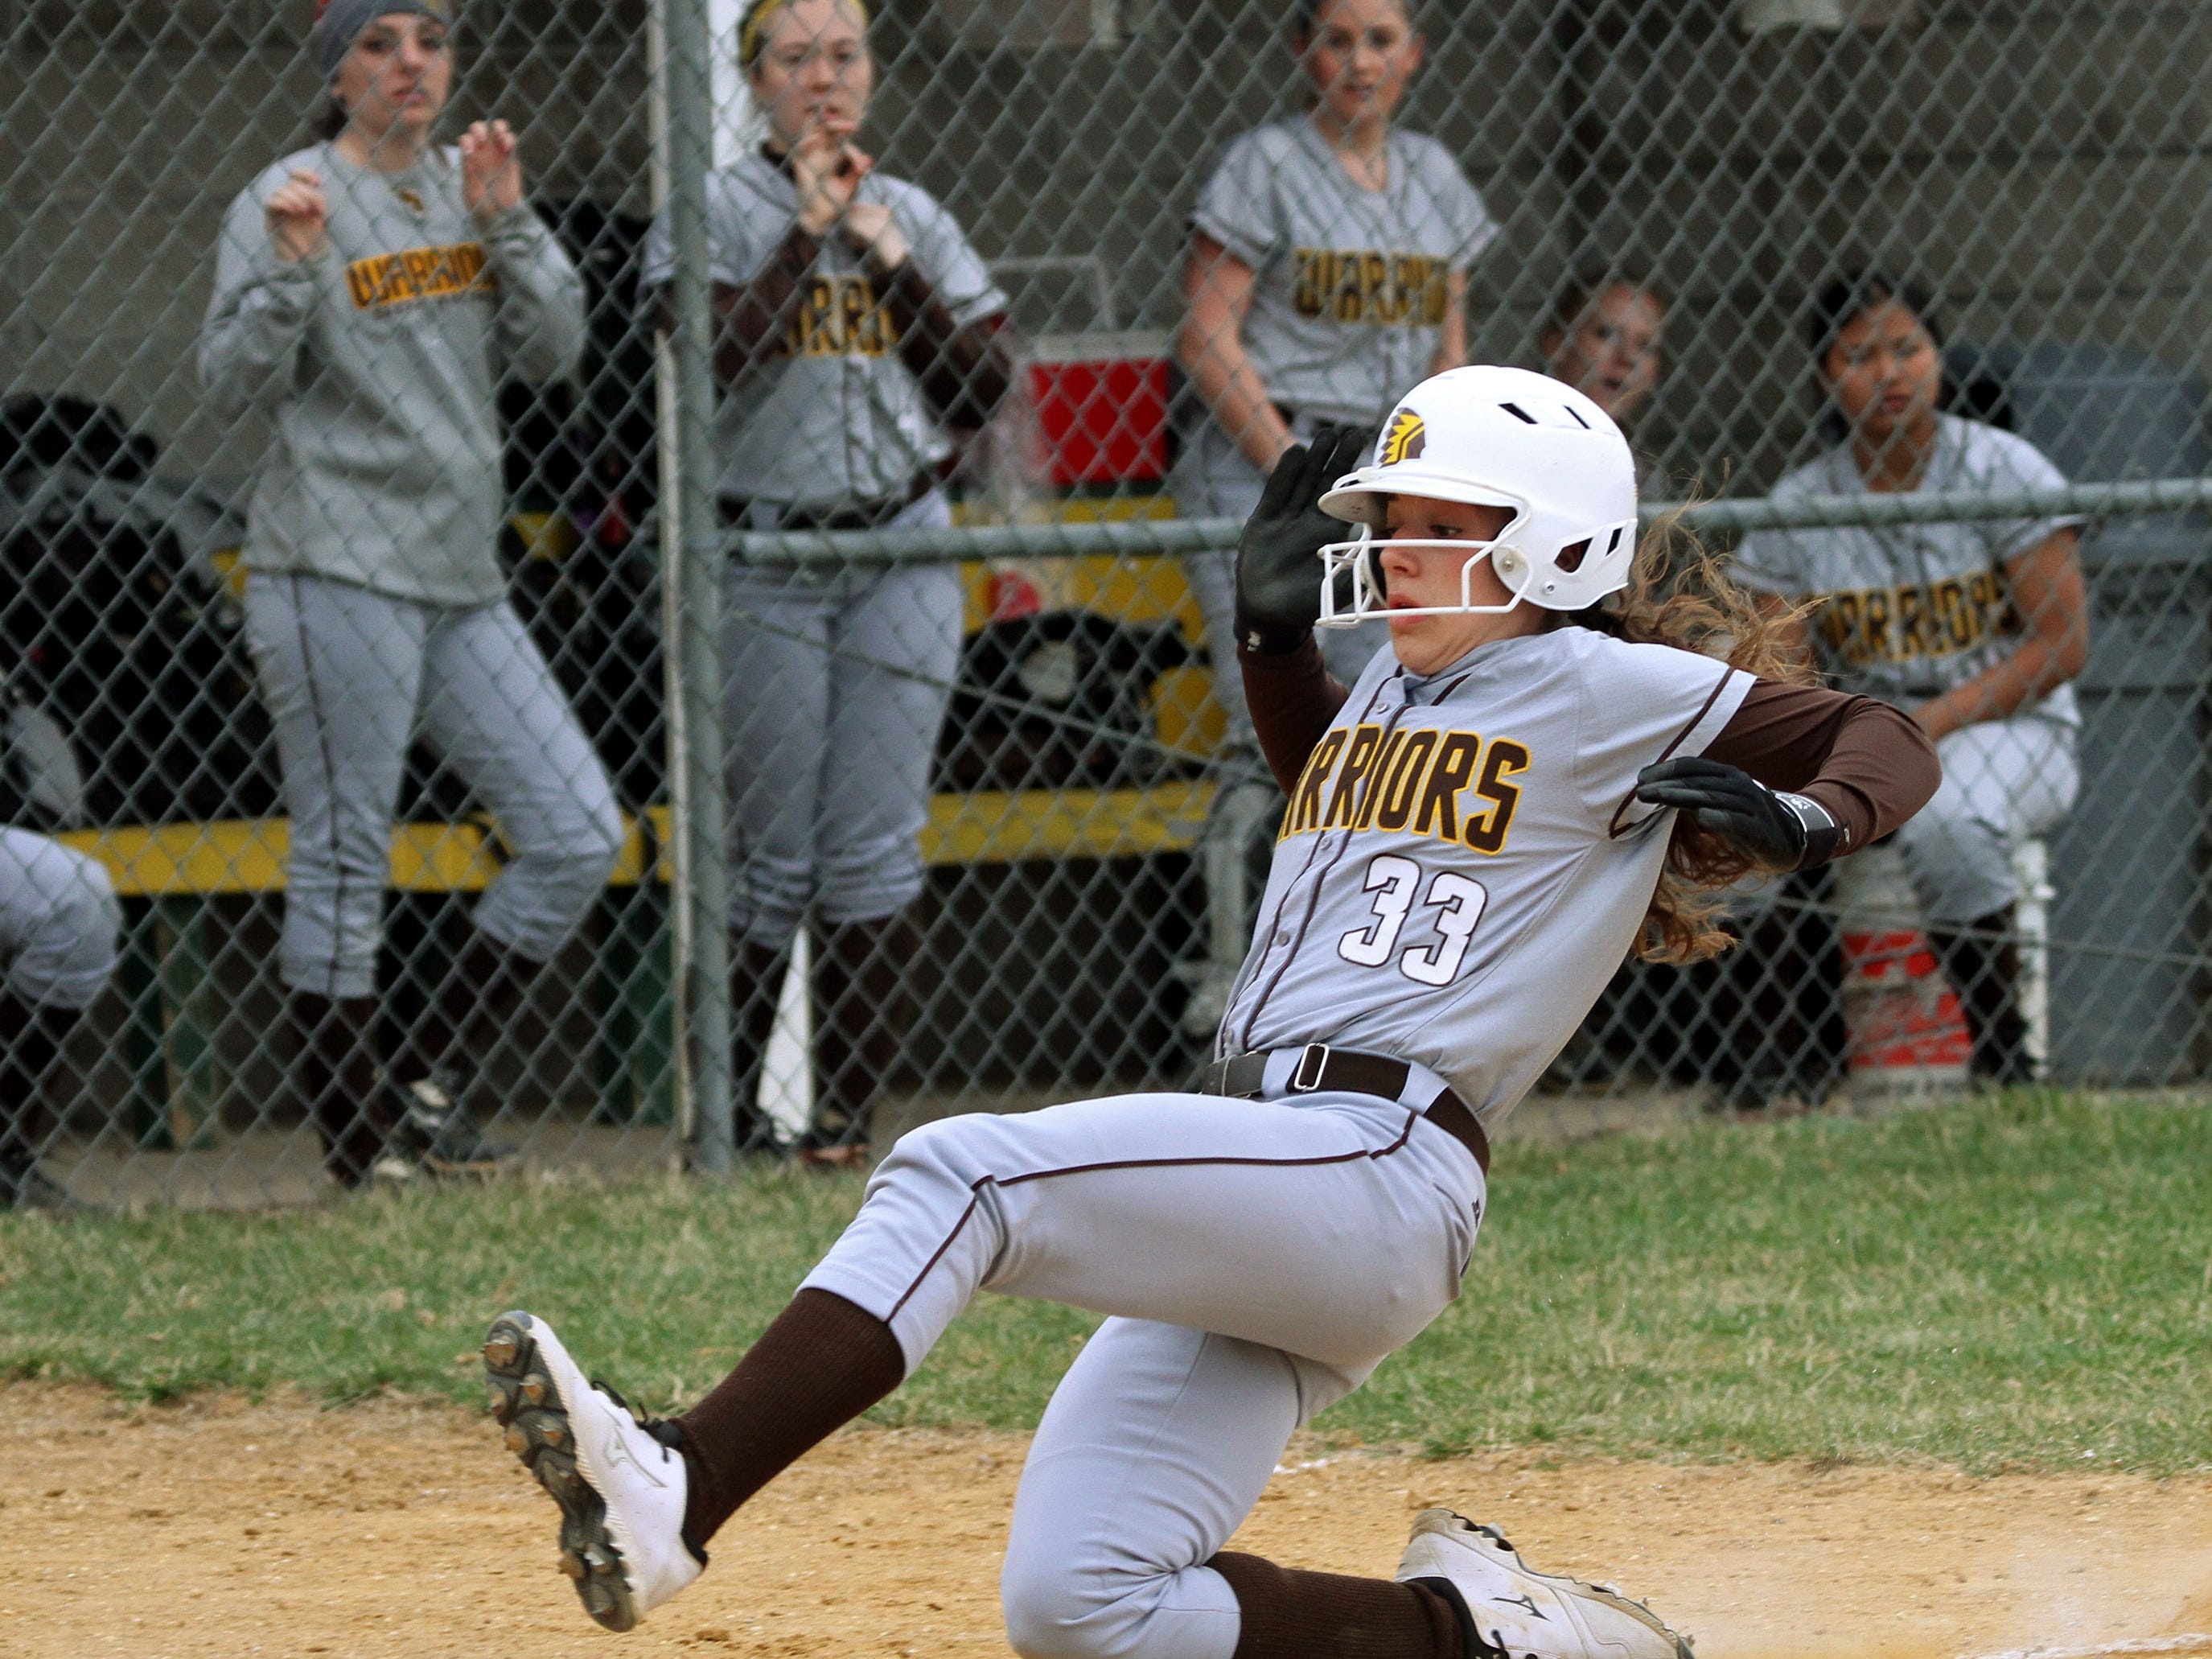 Watchung Hills' Nicole Carroccia slides in safely to home. This is action of Watchung Hills at Montgomery in girls softball.